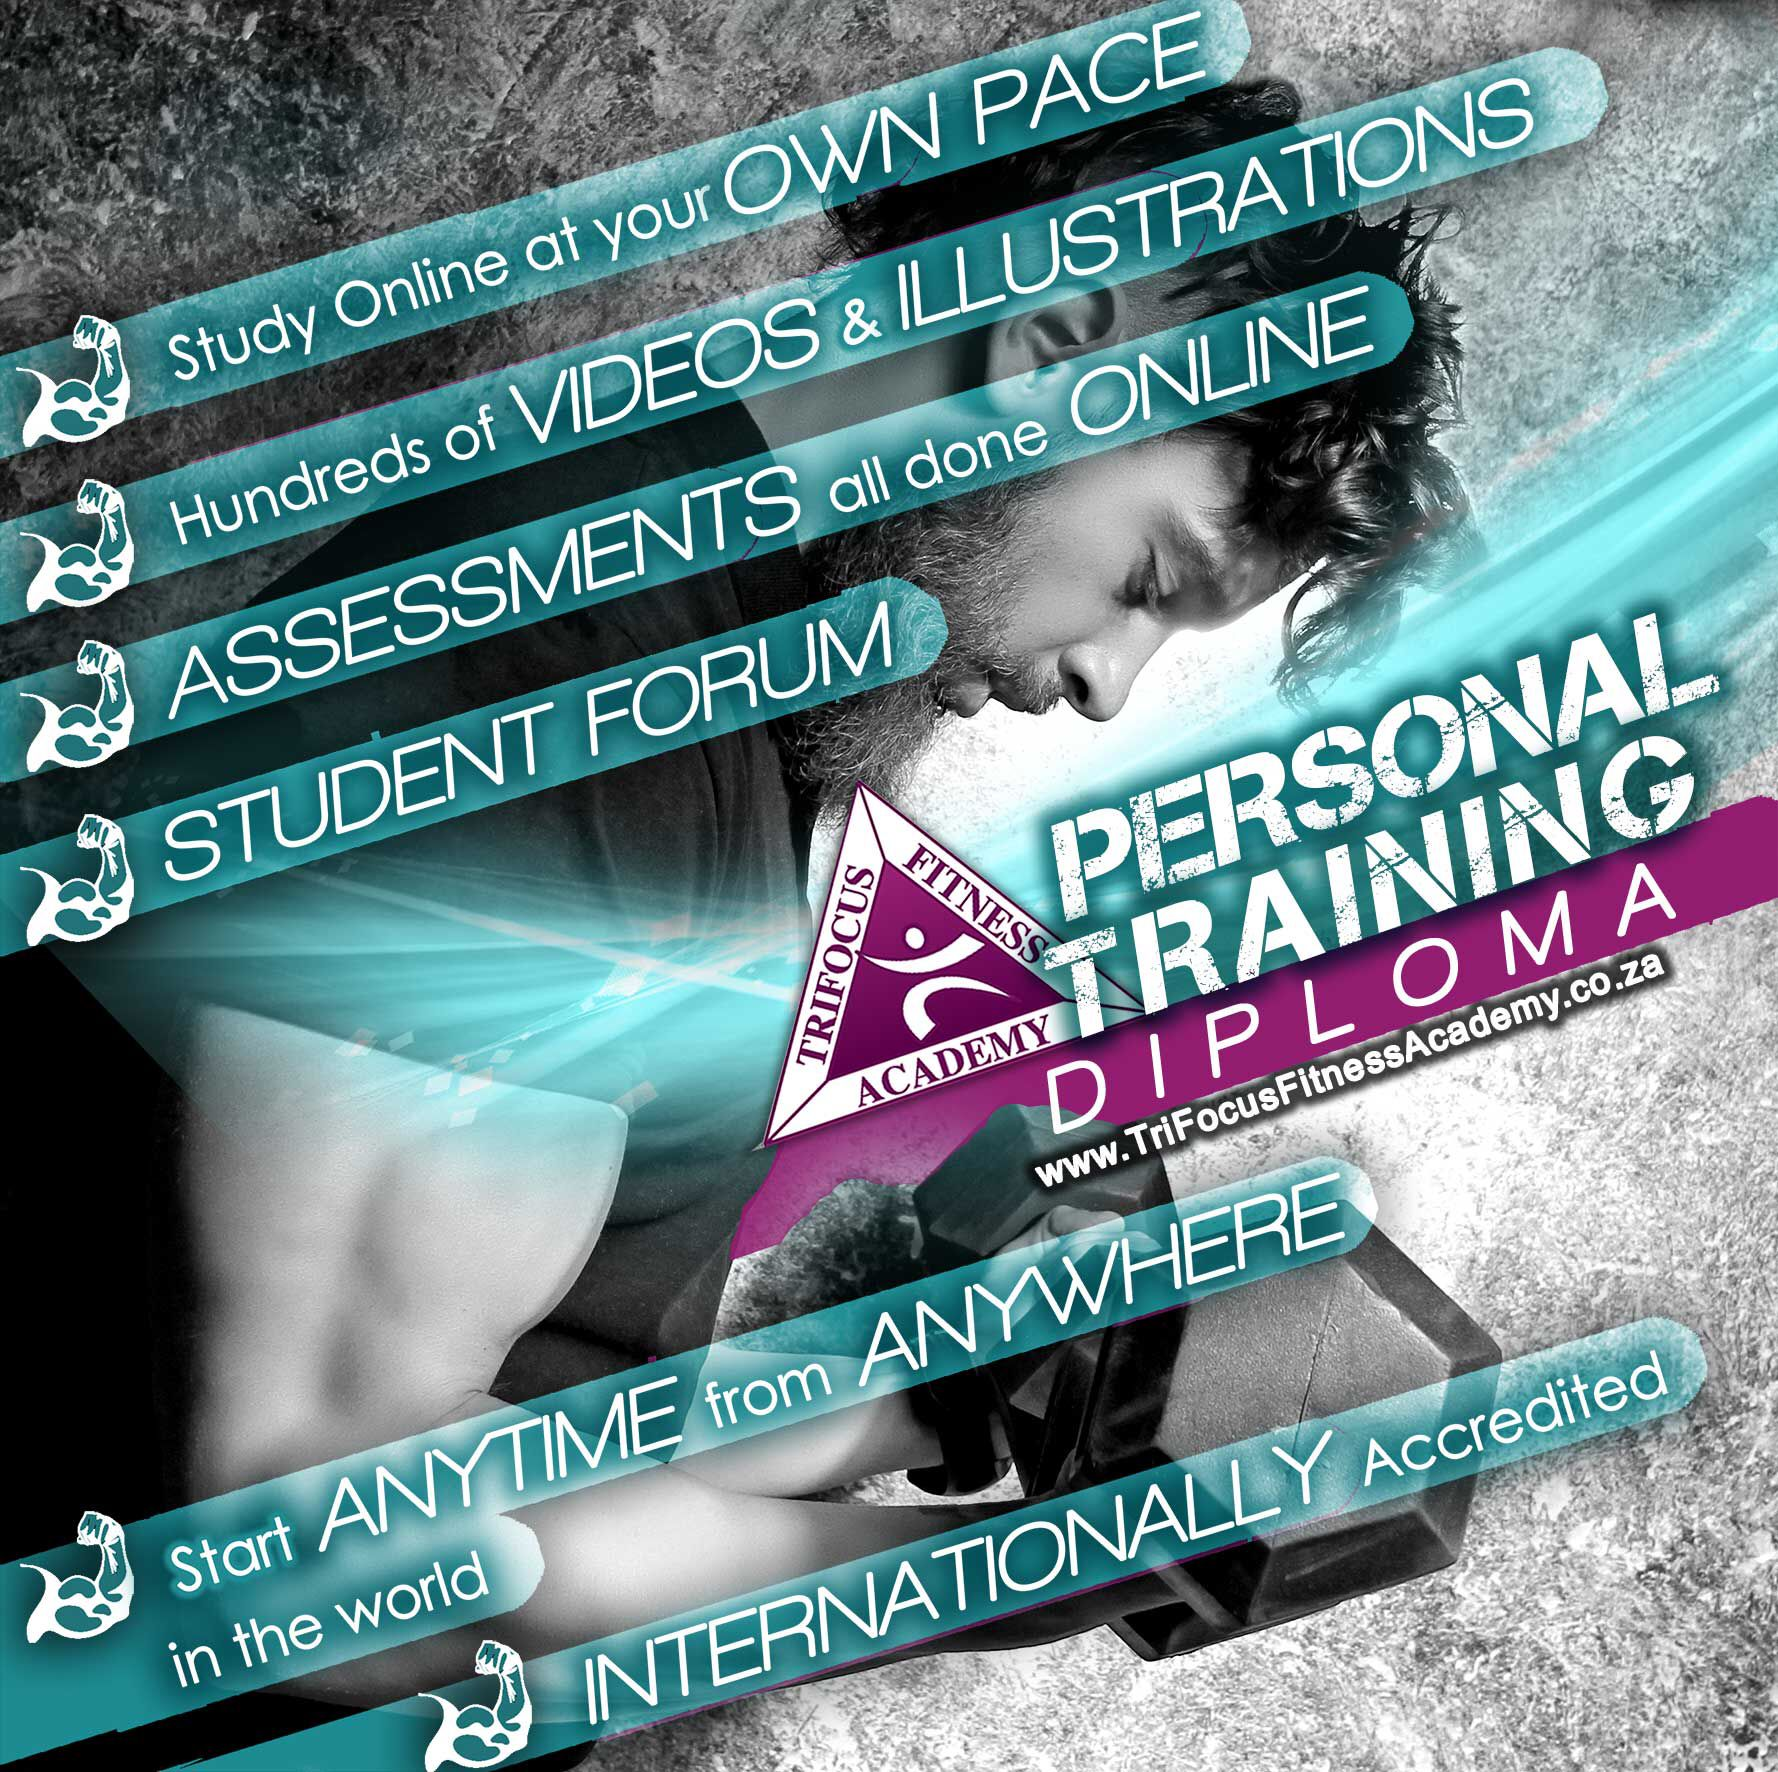 Personal training diploma online advanced the national diploma fitness courses xflitez Image collections